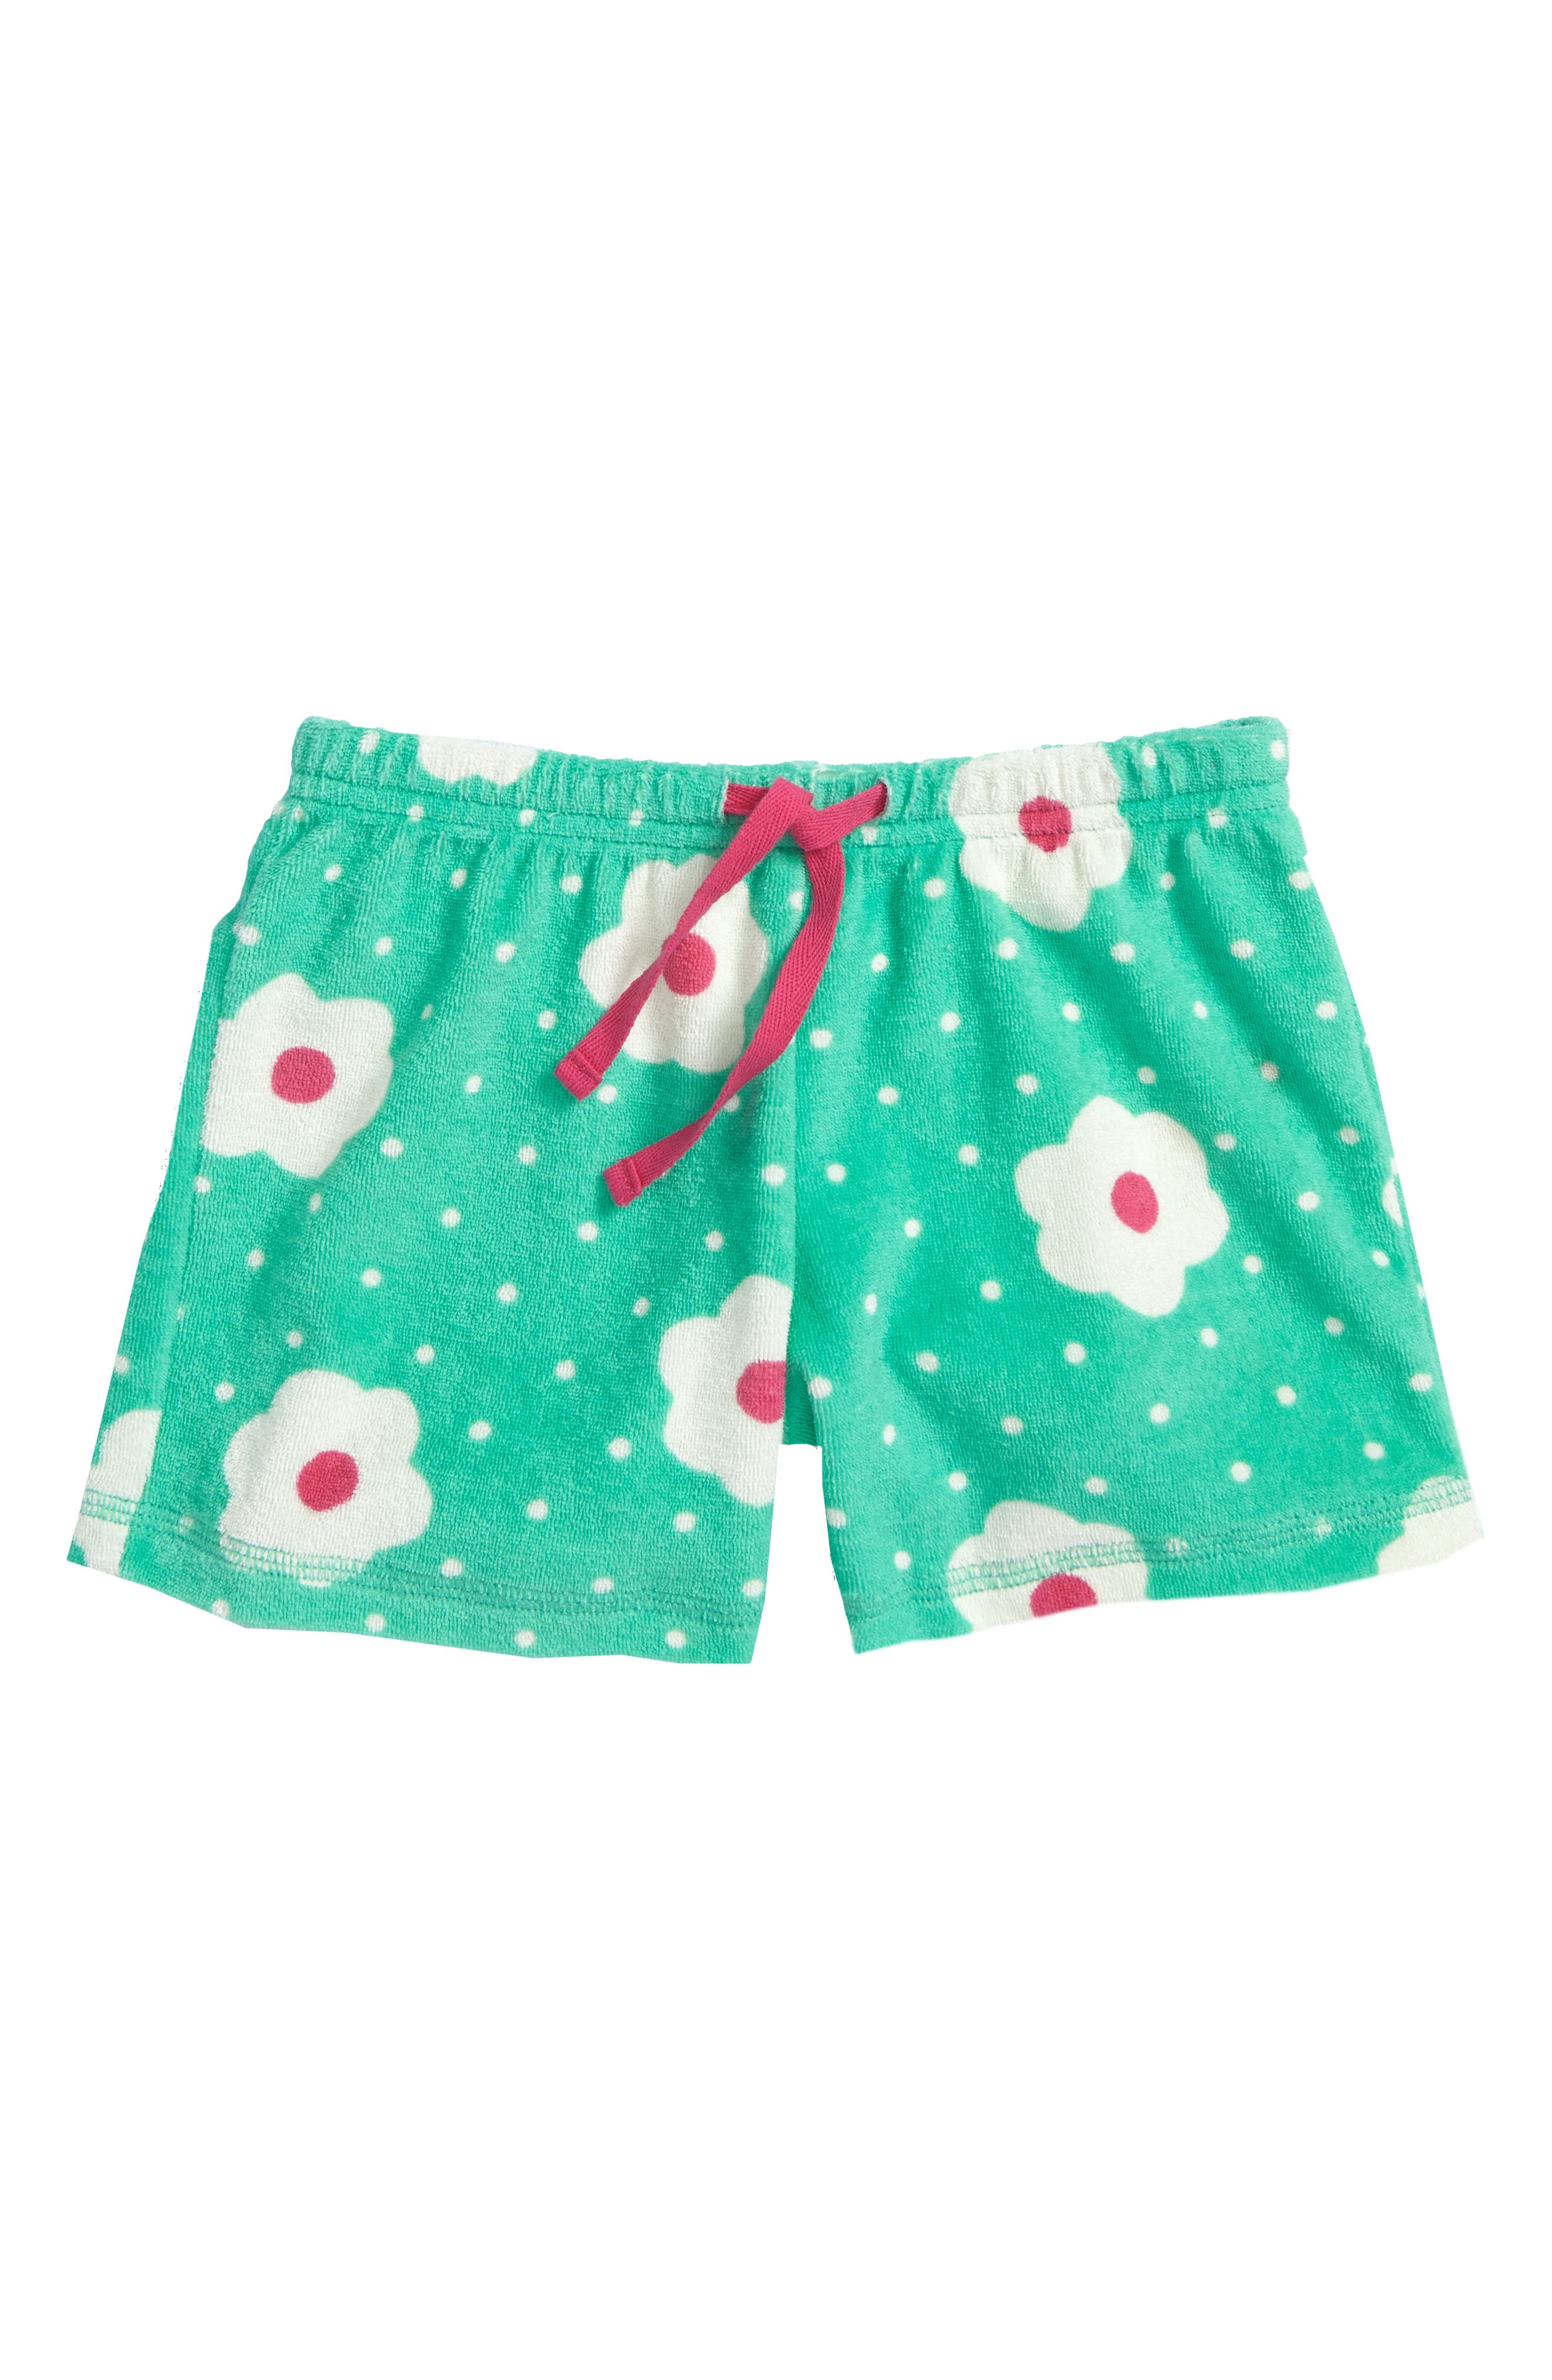 Adventure Toweling Shorts,                         Main,                         color,